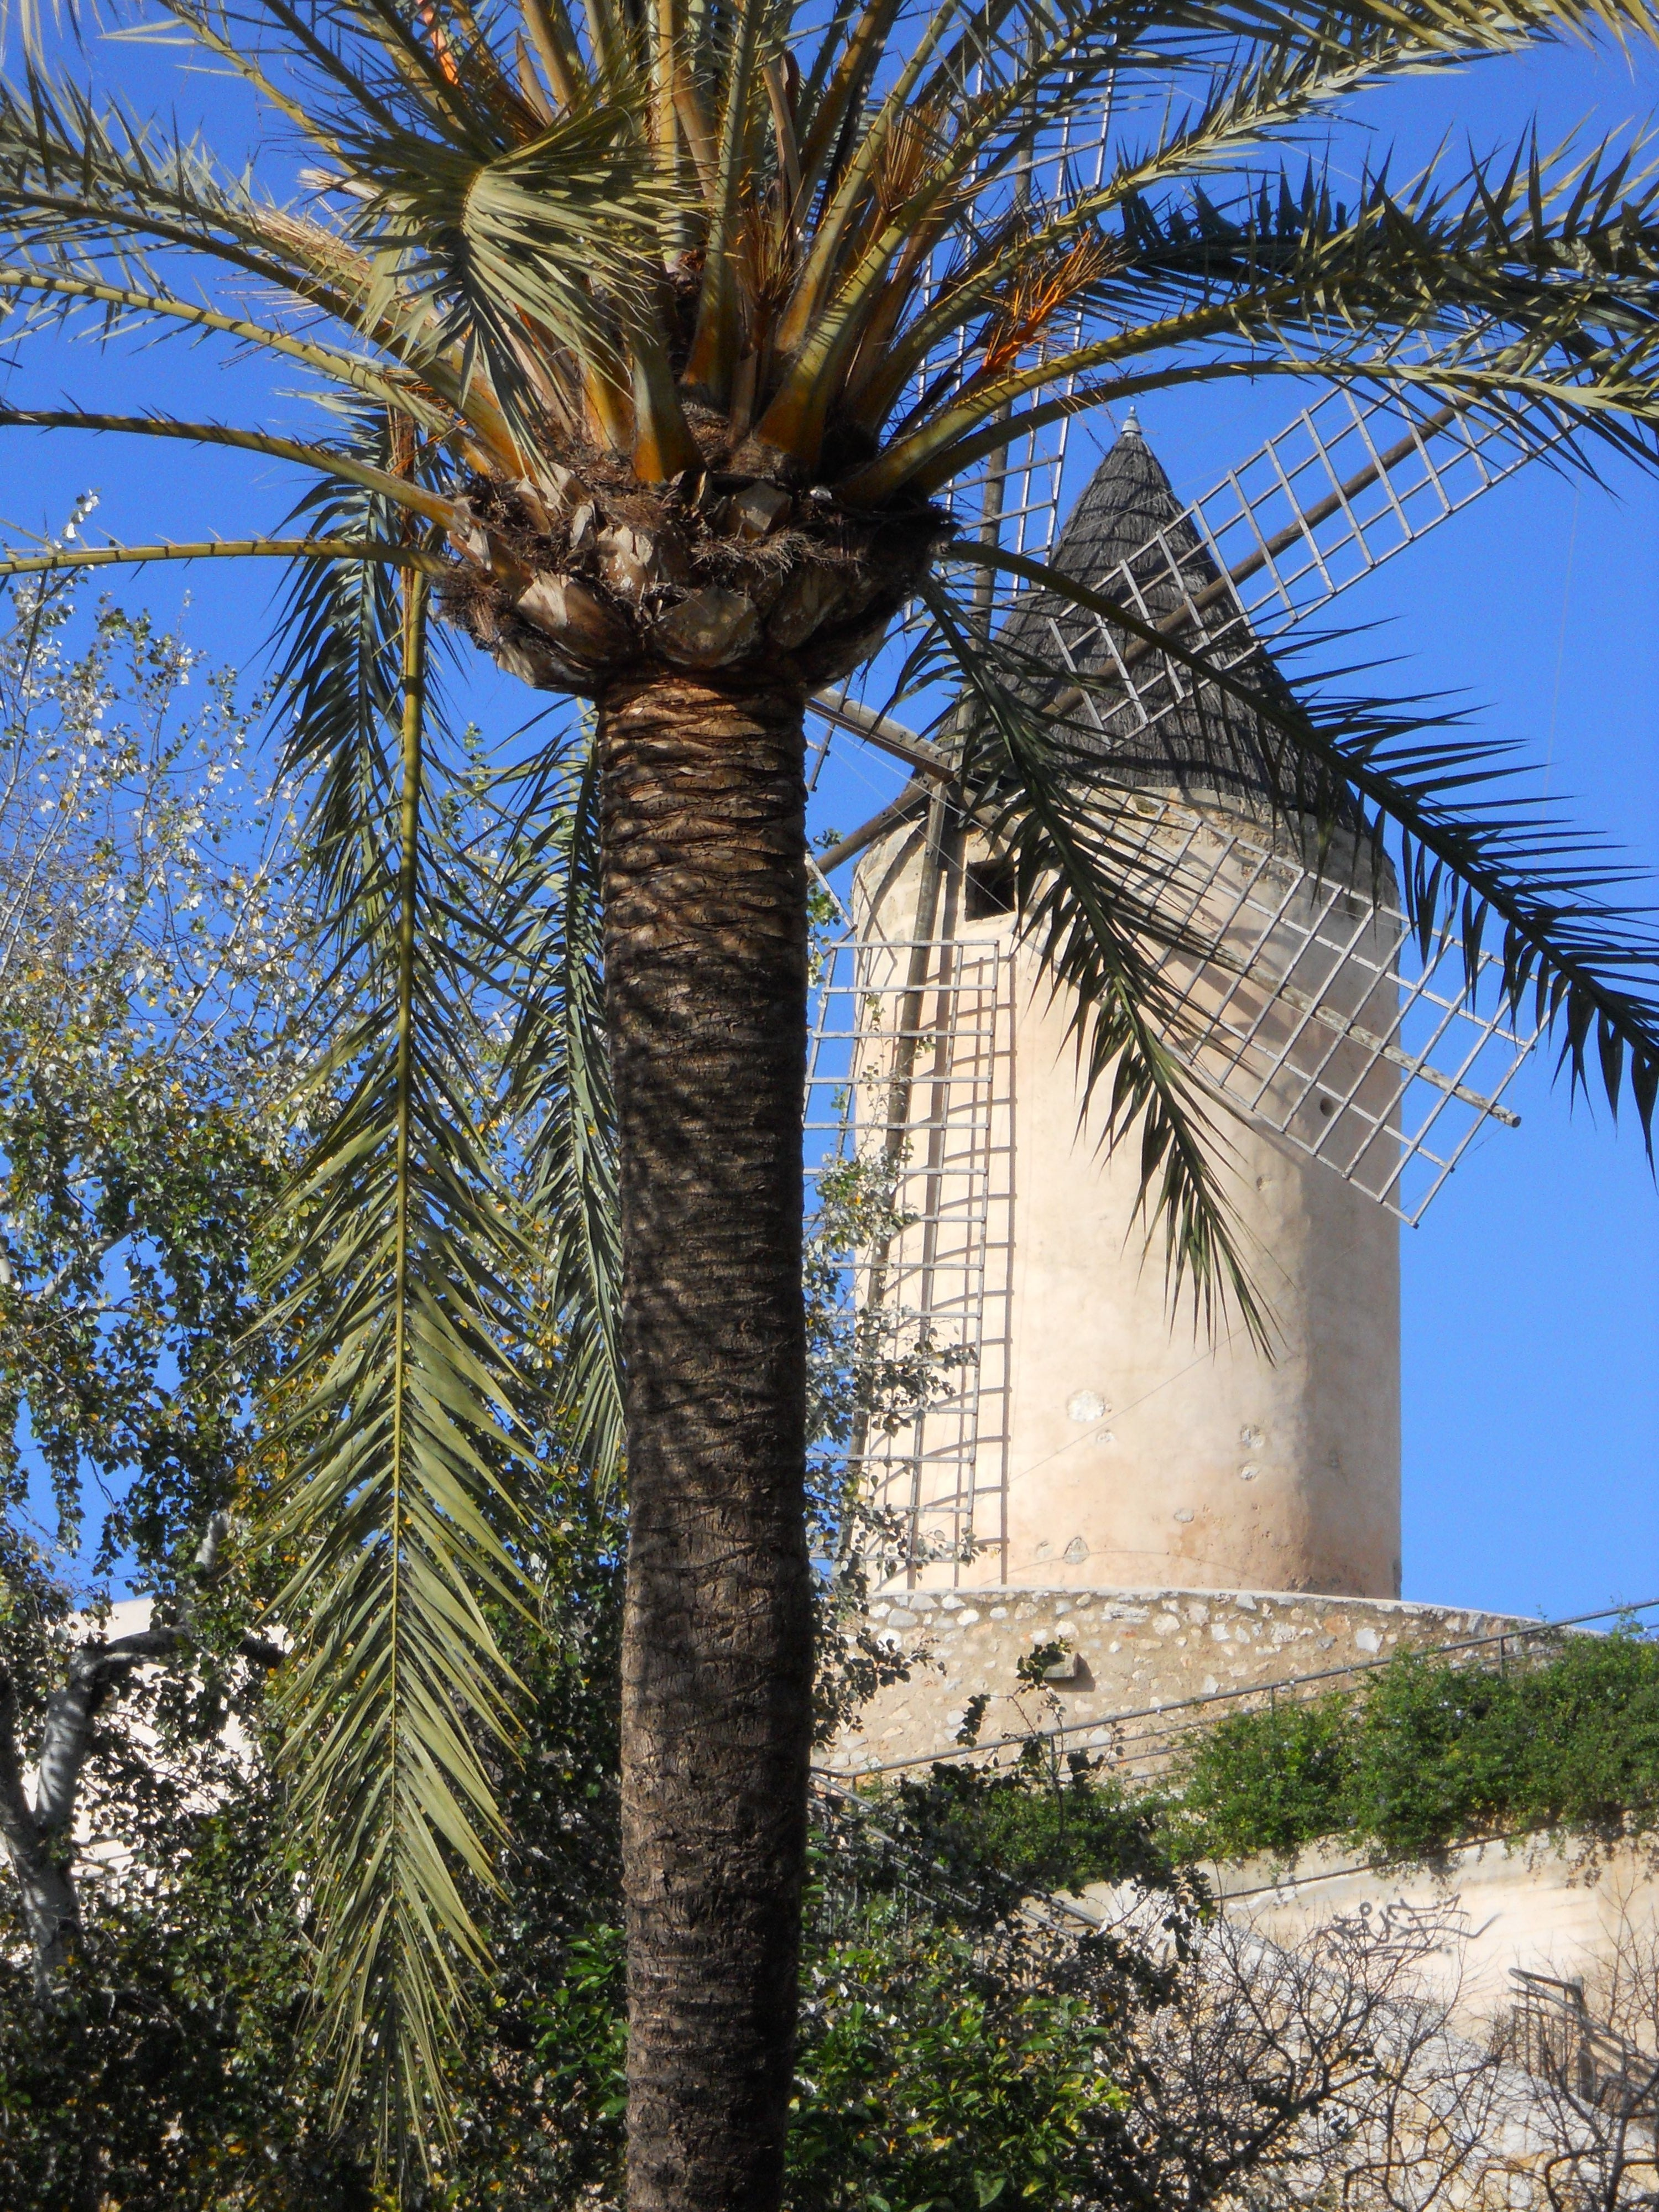 Windmühle in Palma